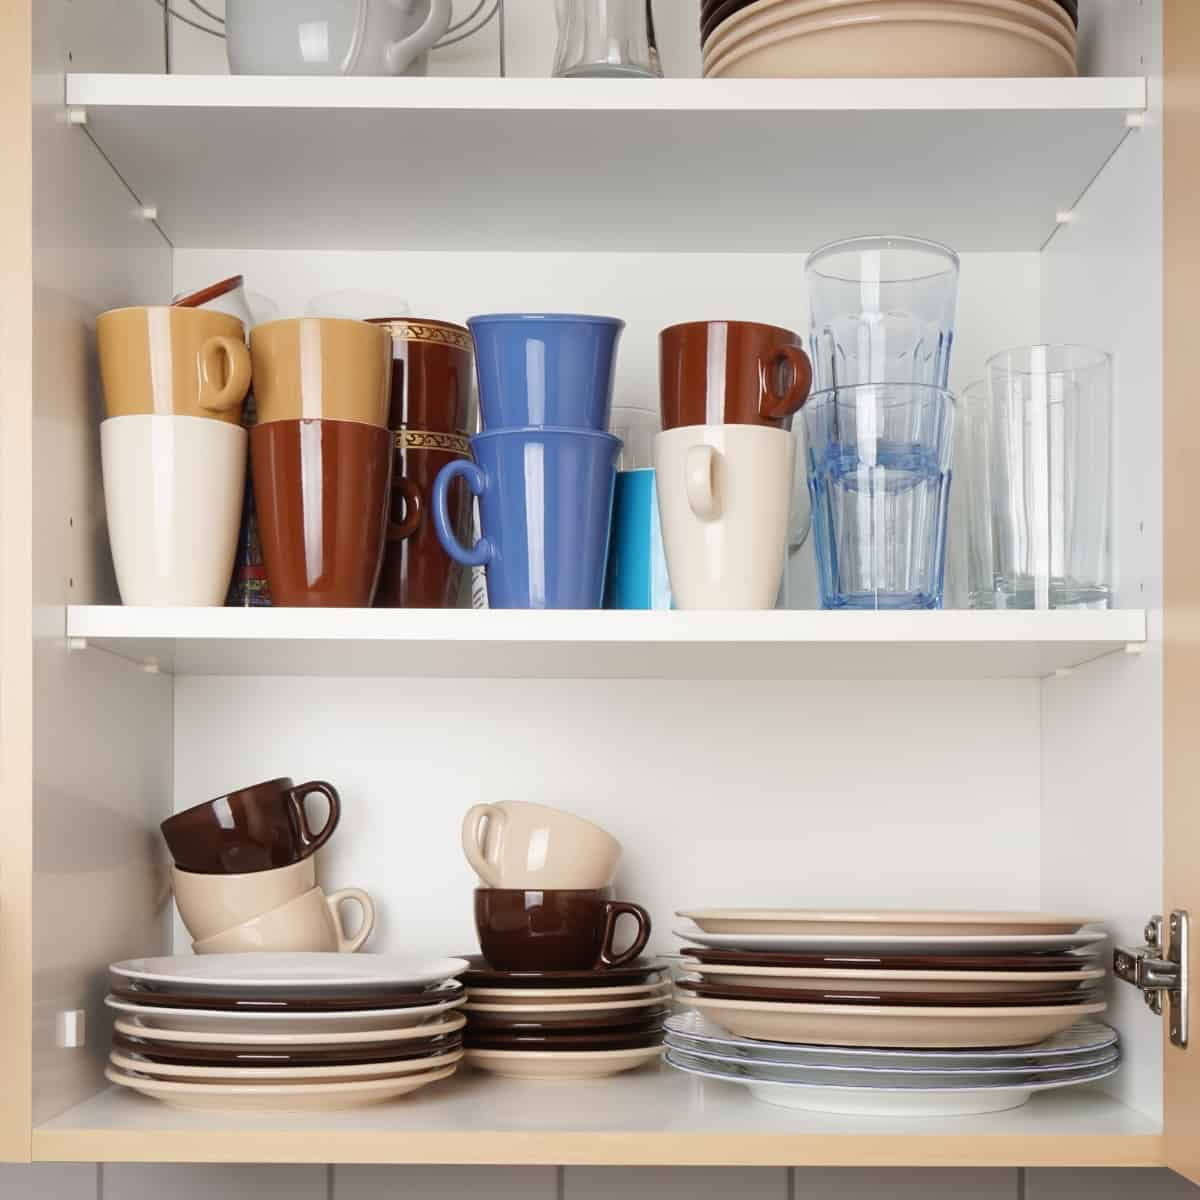 frameless cabinet with dishes on shelves